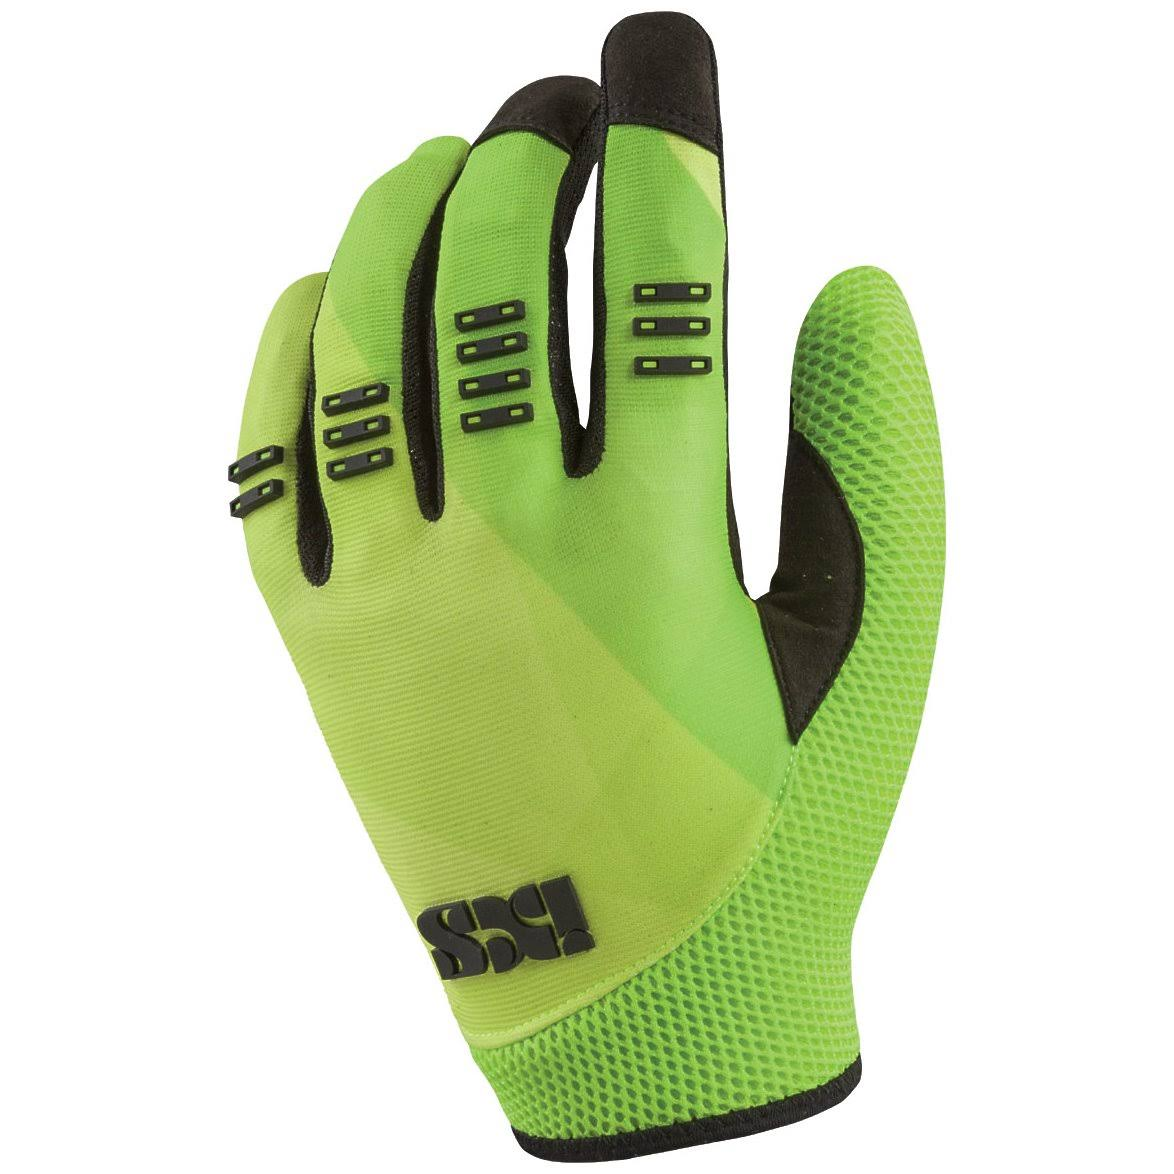 IXS BC-X3.1 Freeride Biking Gloves - 472-510-5400 472-510-5400-003-XL